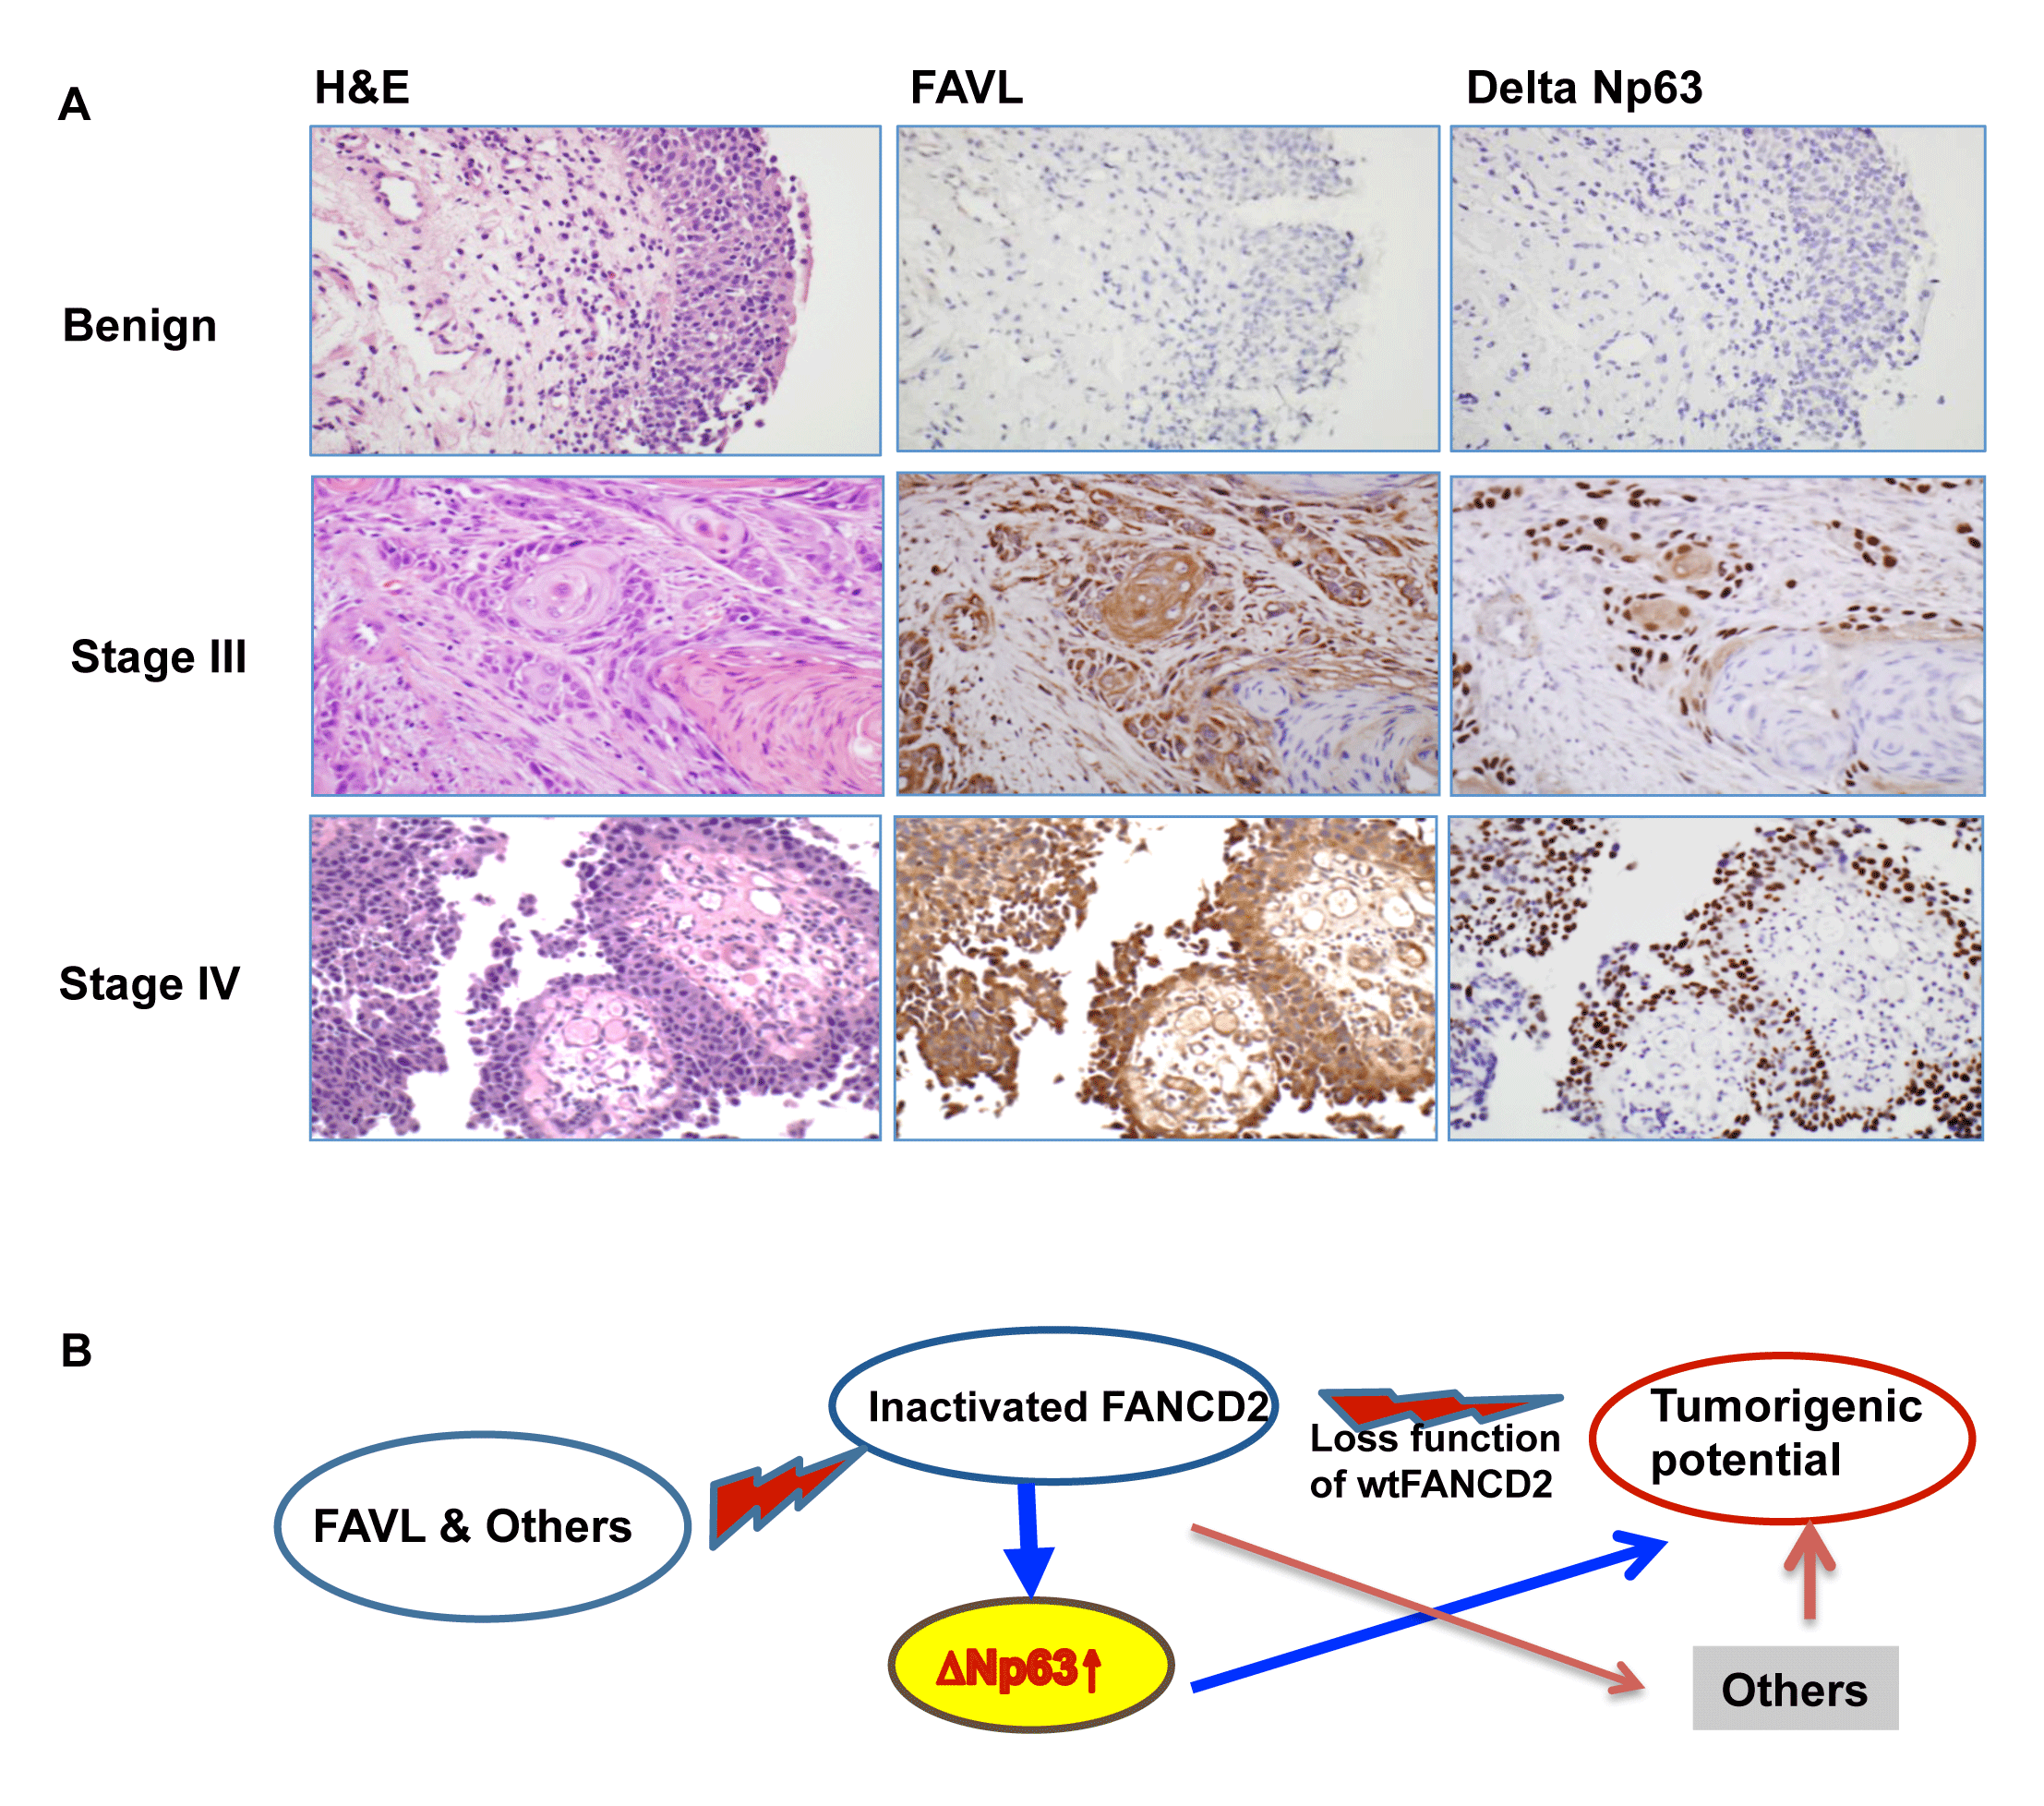 ∆Np63 can mediate tumorigenecity of an impaired FA pathway/an inactivated FANCD2.